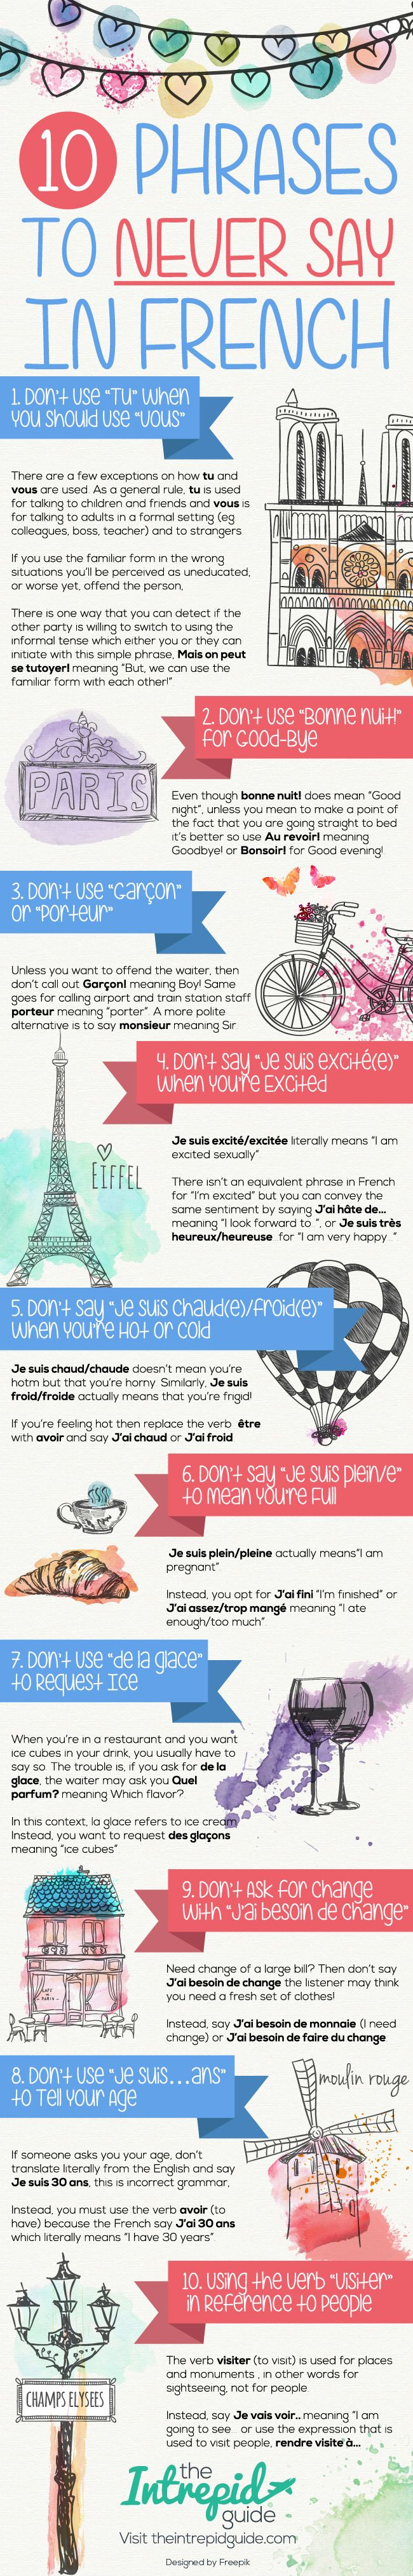 10 Phrases to Never Say in French                              …